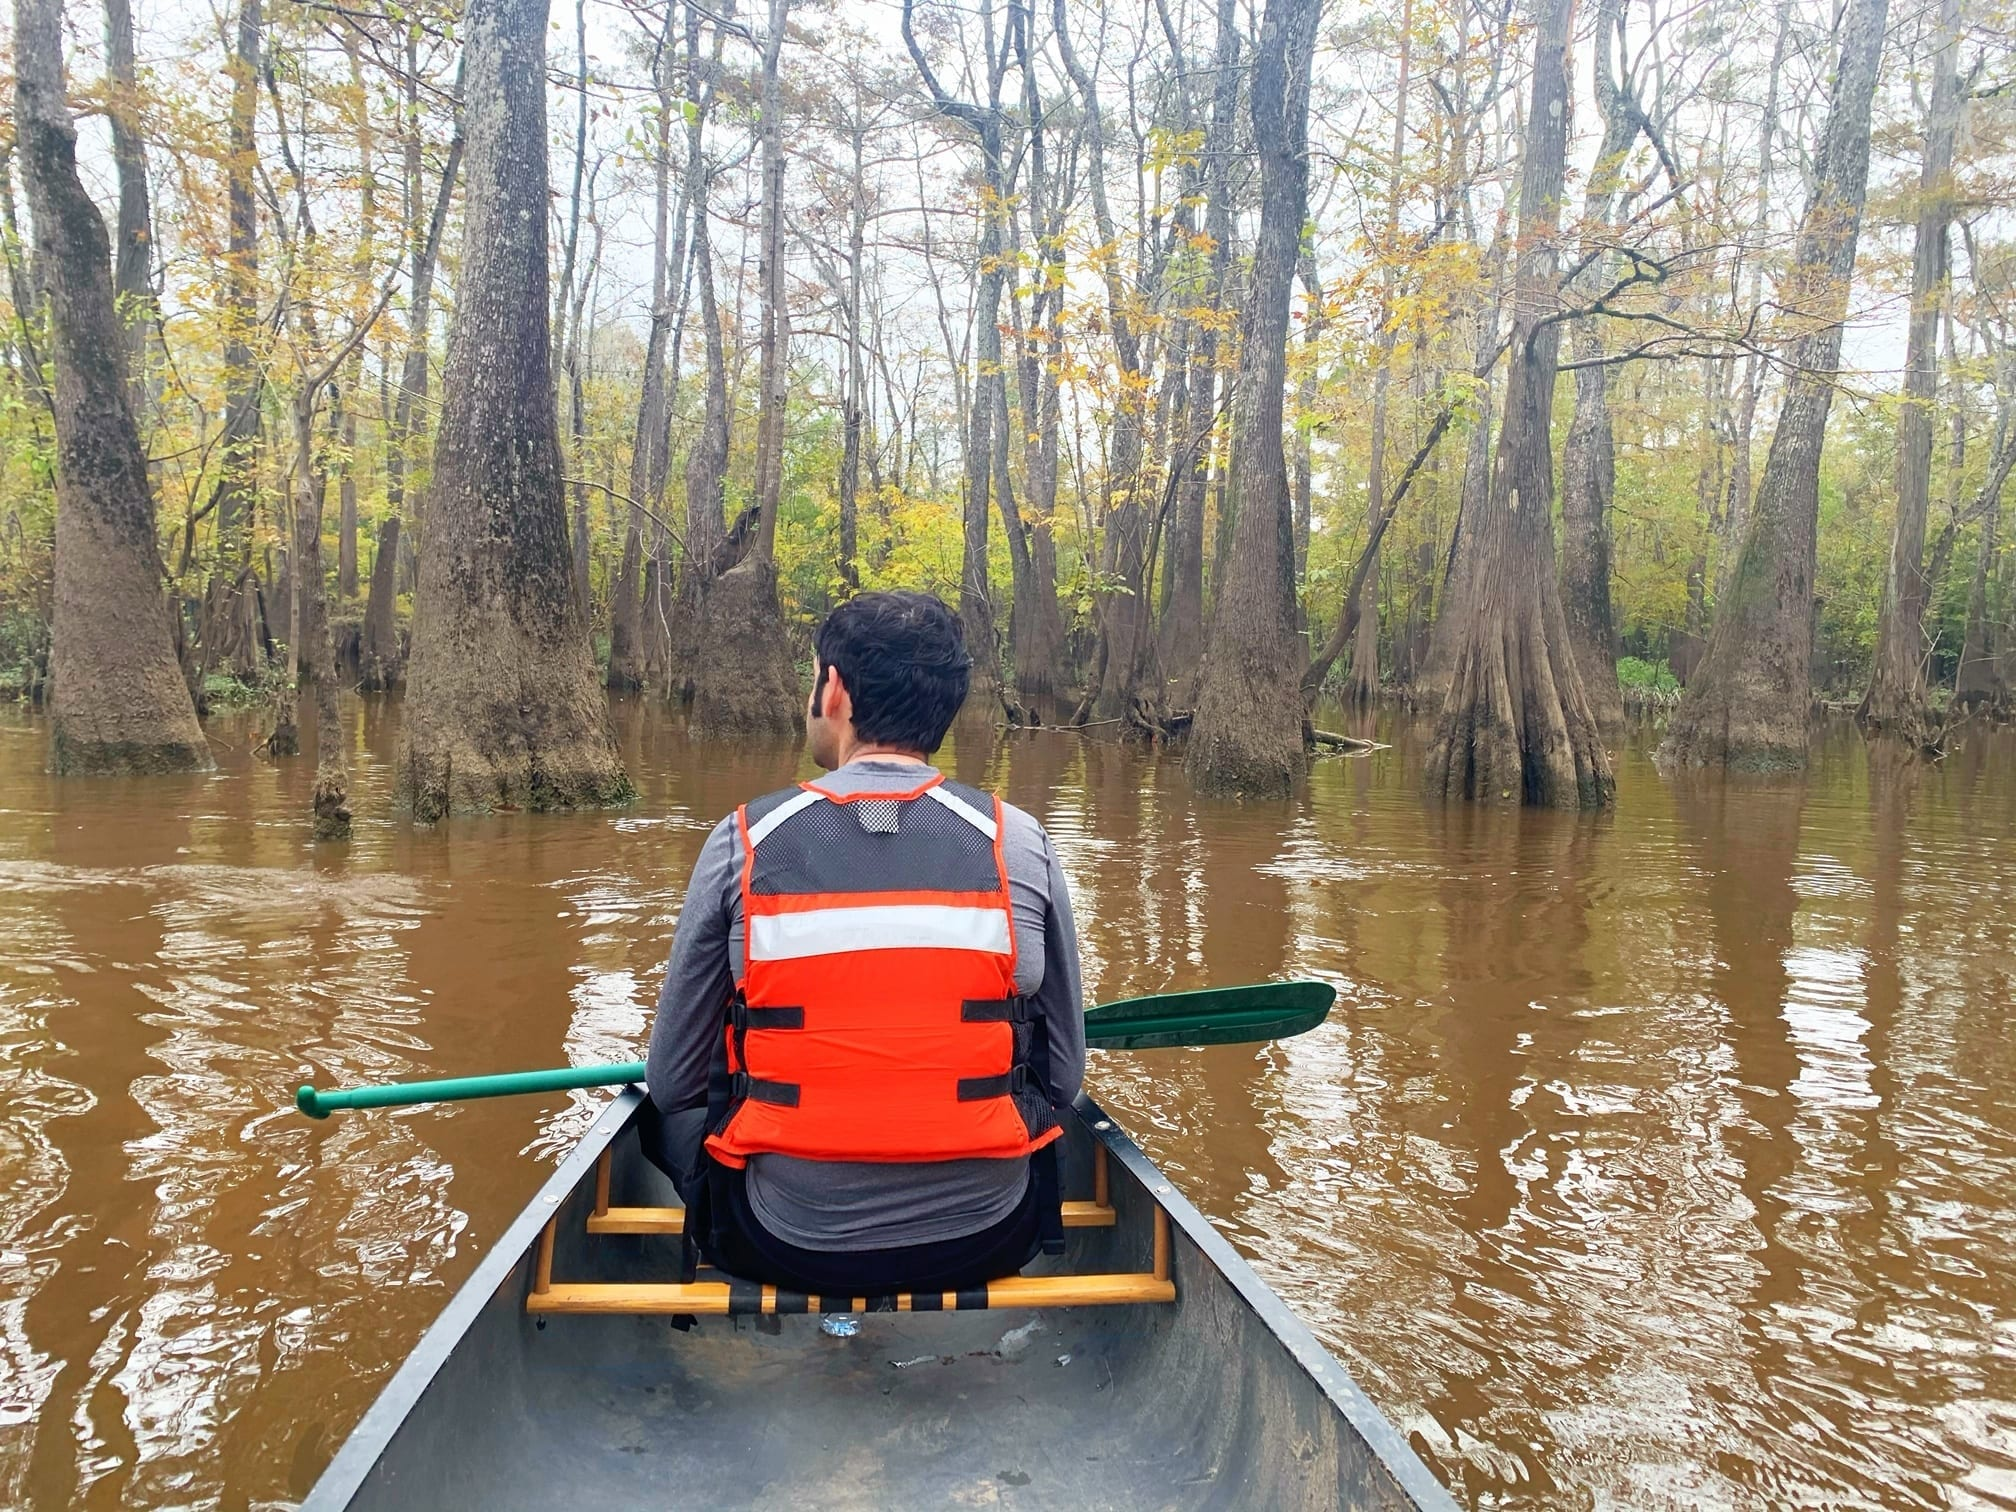 Trains, Missions and Canoes: A Unique National Park Foundation Adventure in Texas